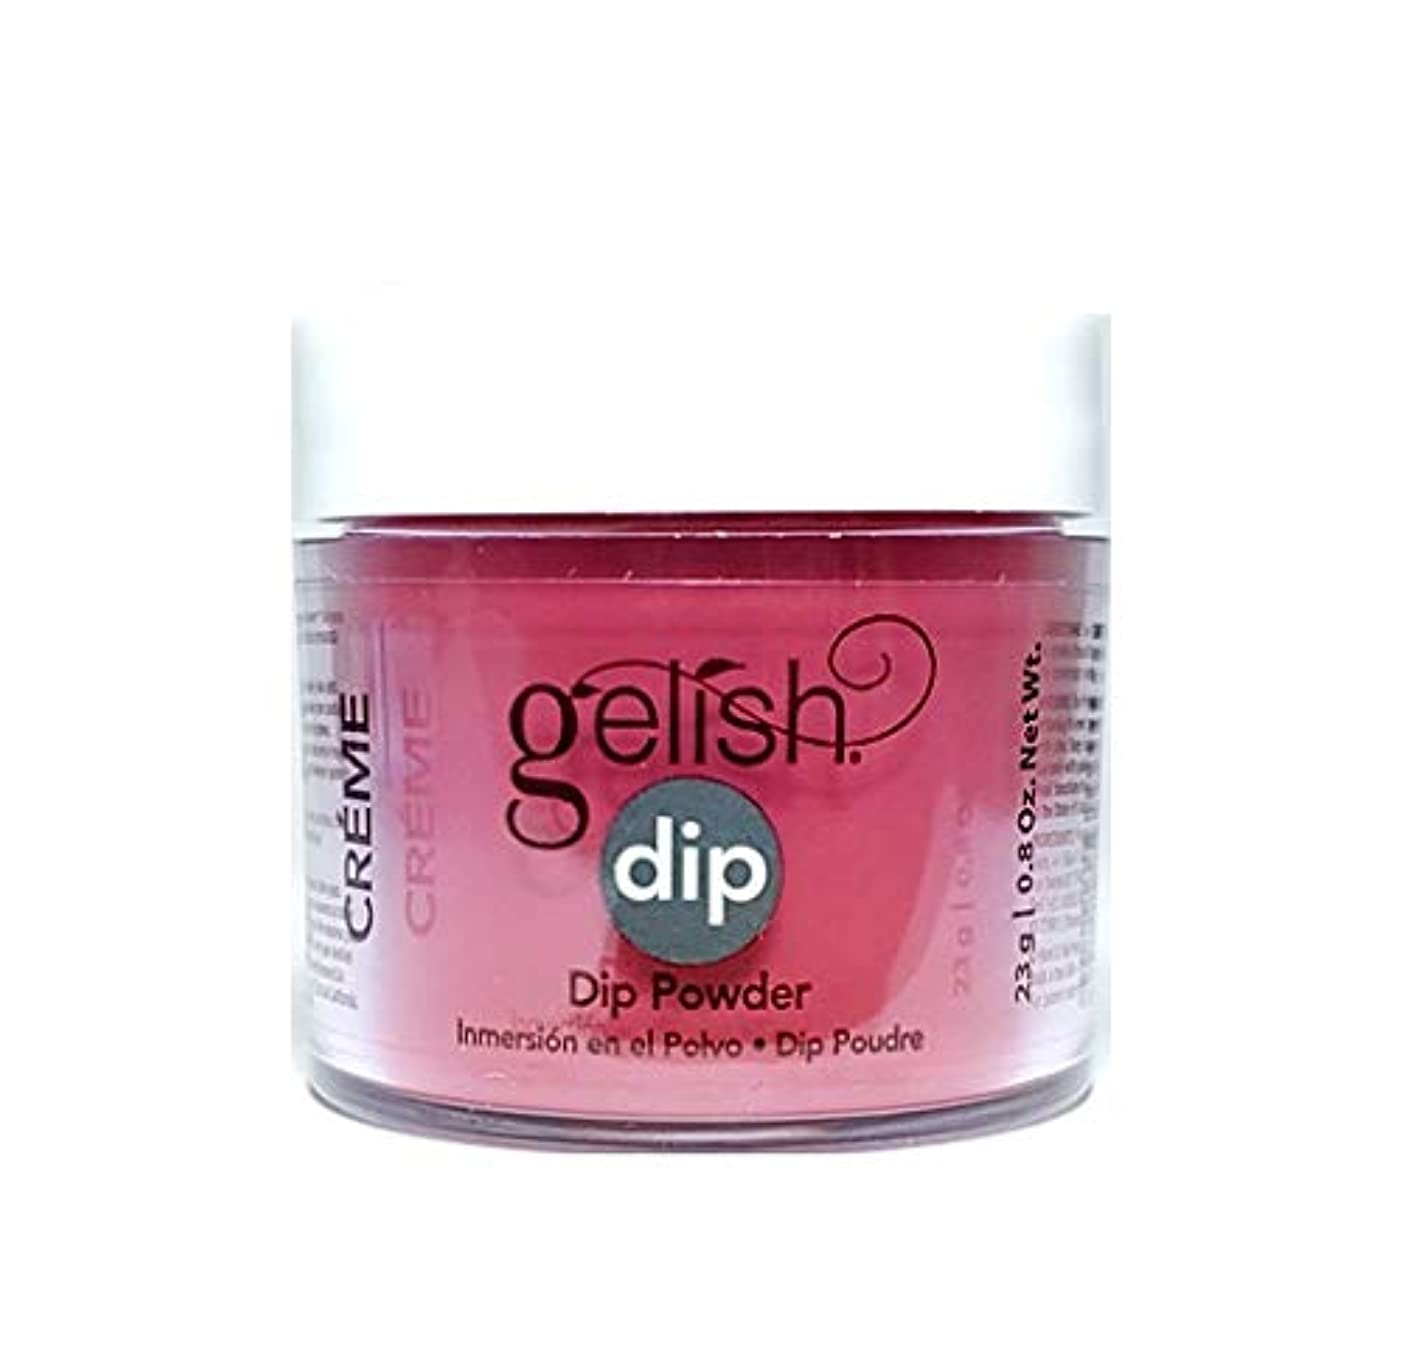 Harmony Gelish - Dip Powder - Looking For A Wingman - 23g / 0.8oz